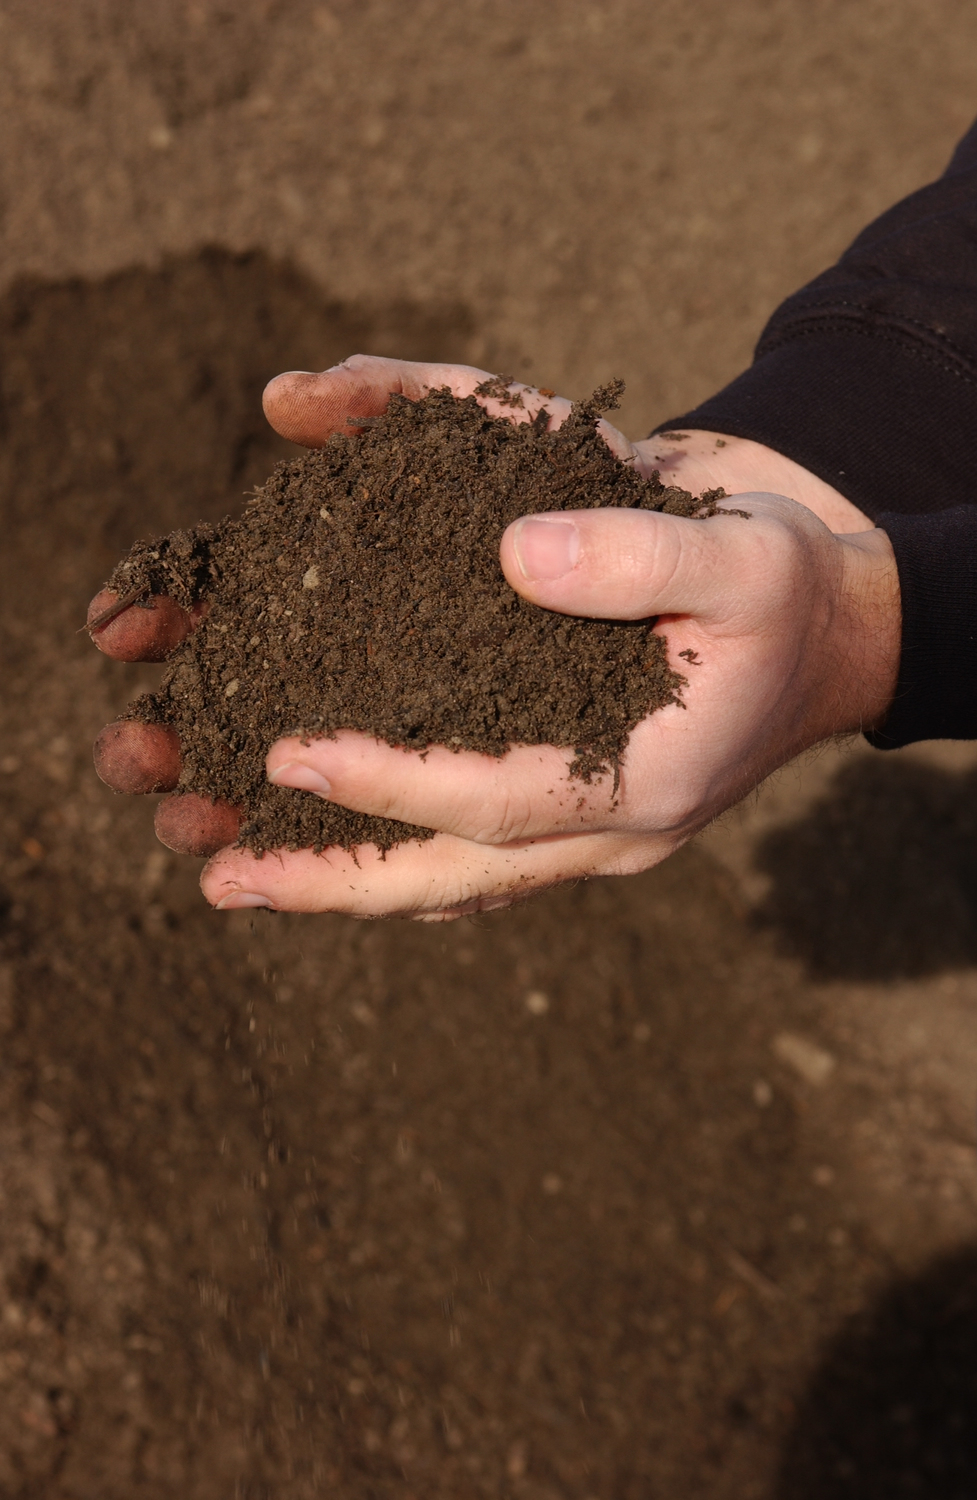 Garden soil, turf soil, or custom soil blends made to your specs.